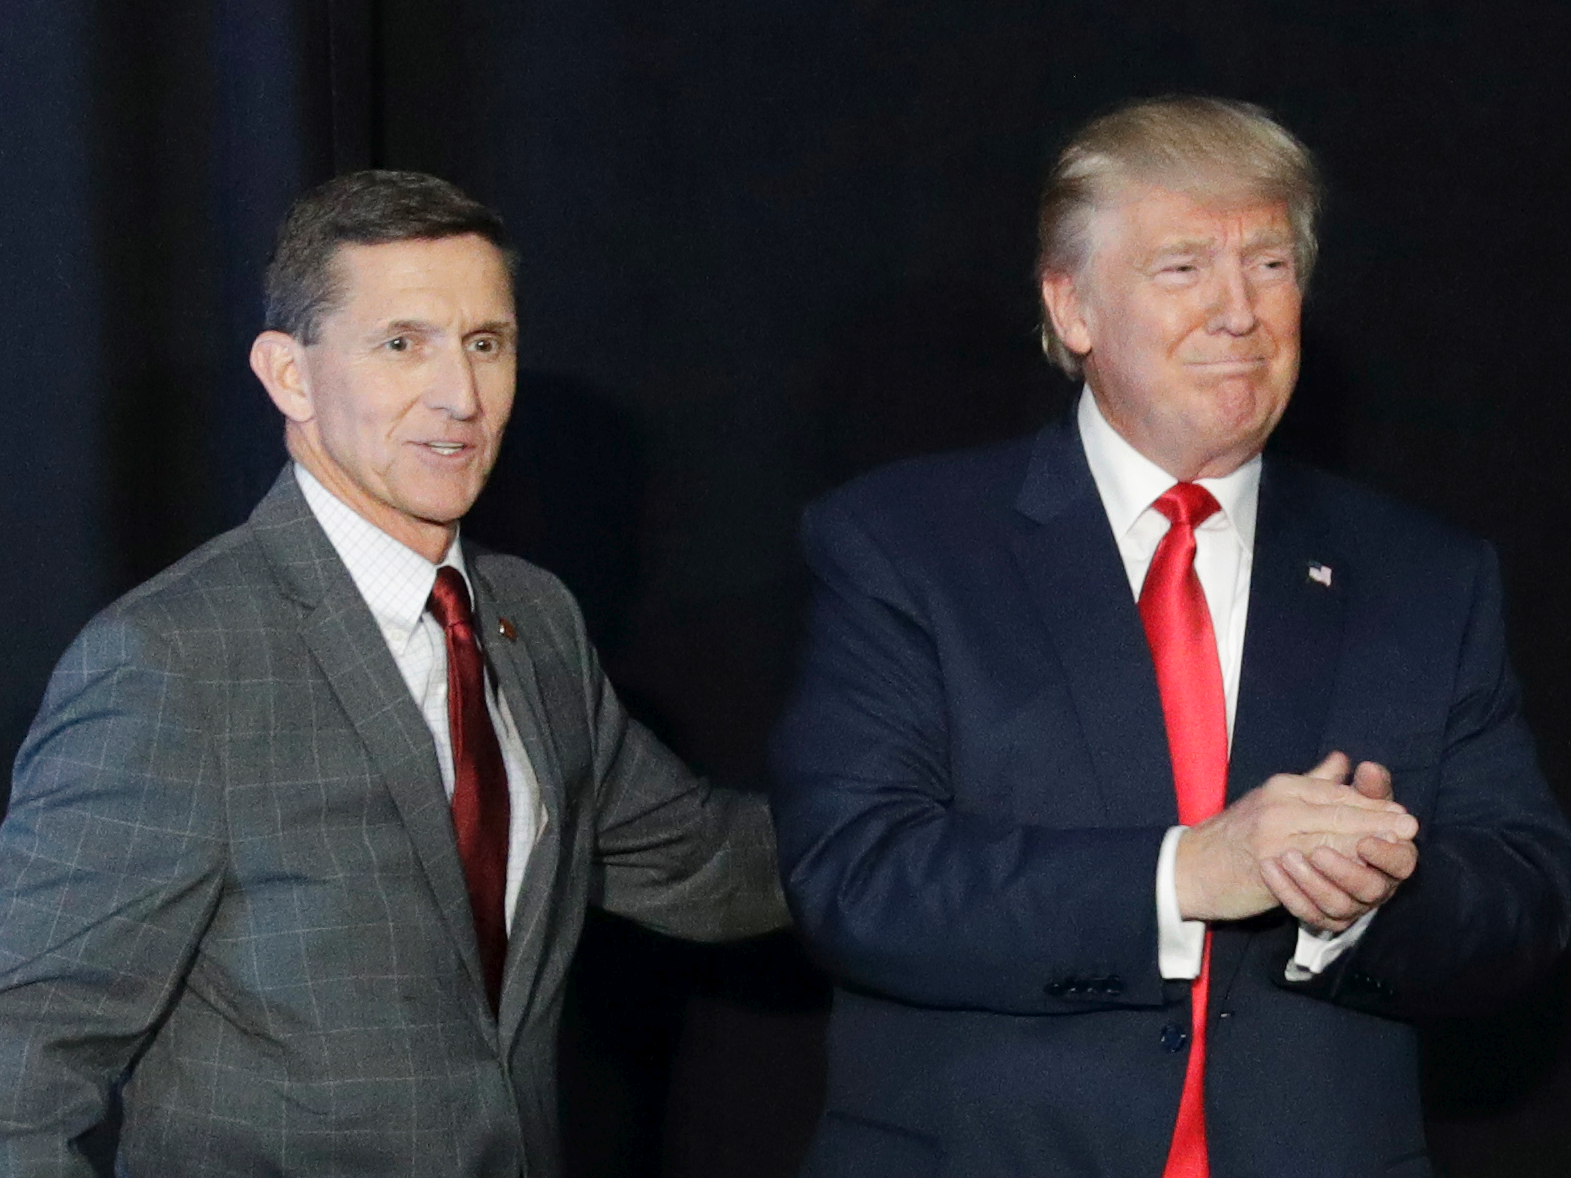 Former Trump adviser Flynn to be sentenced for lying to FBI